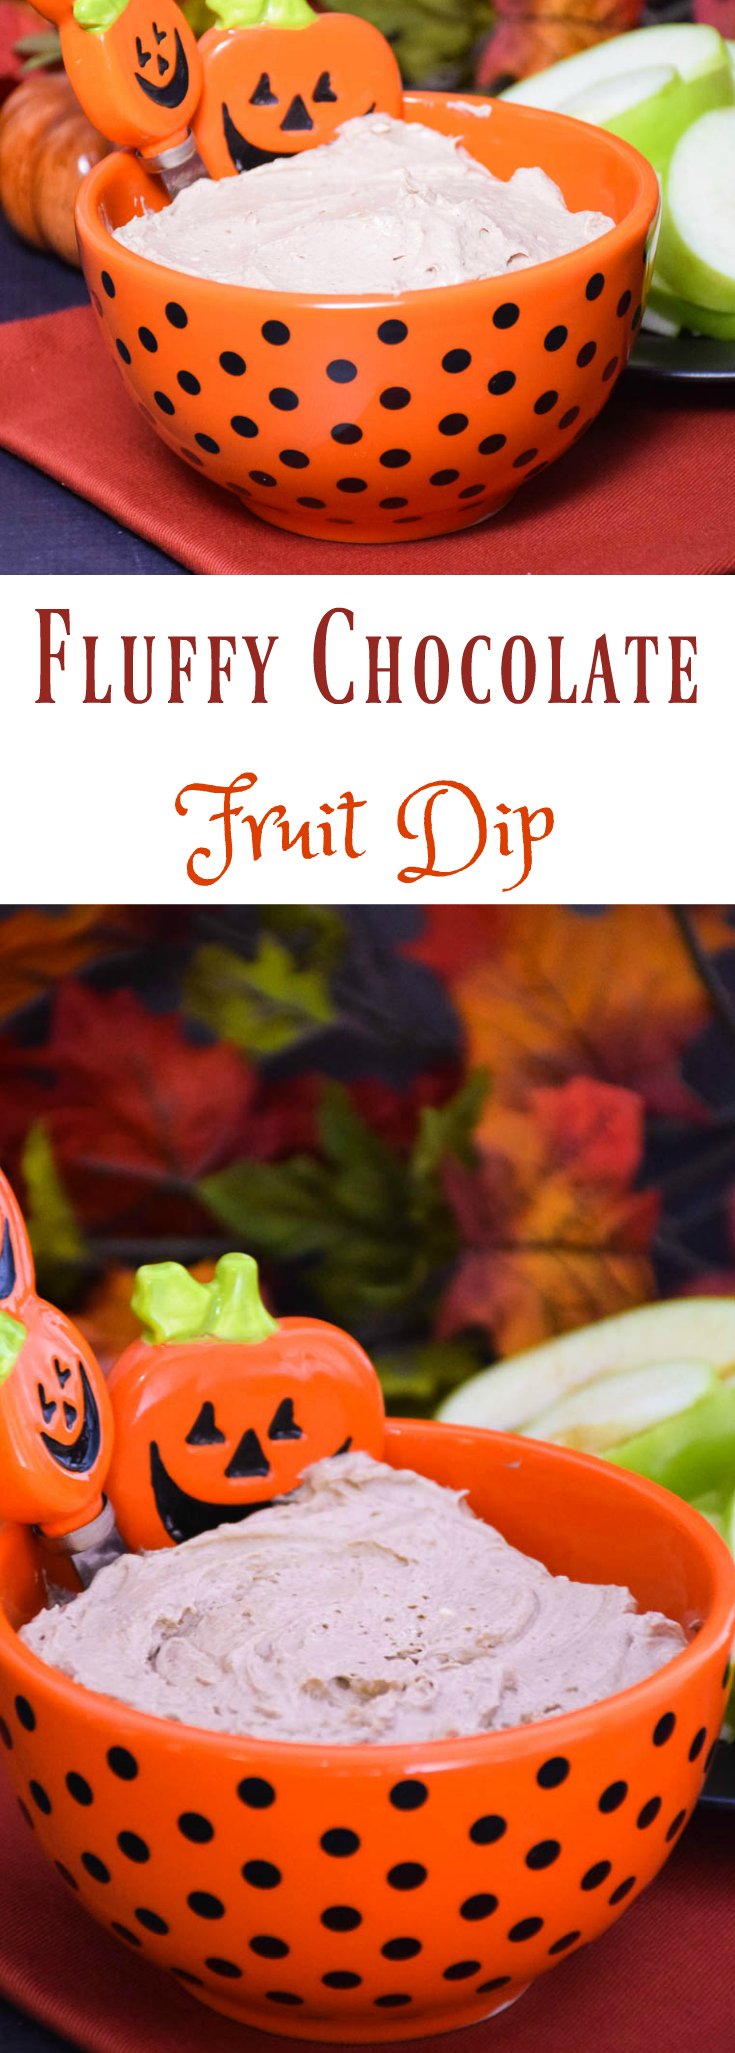 Fluffy Chocolate Fruit Dip